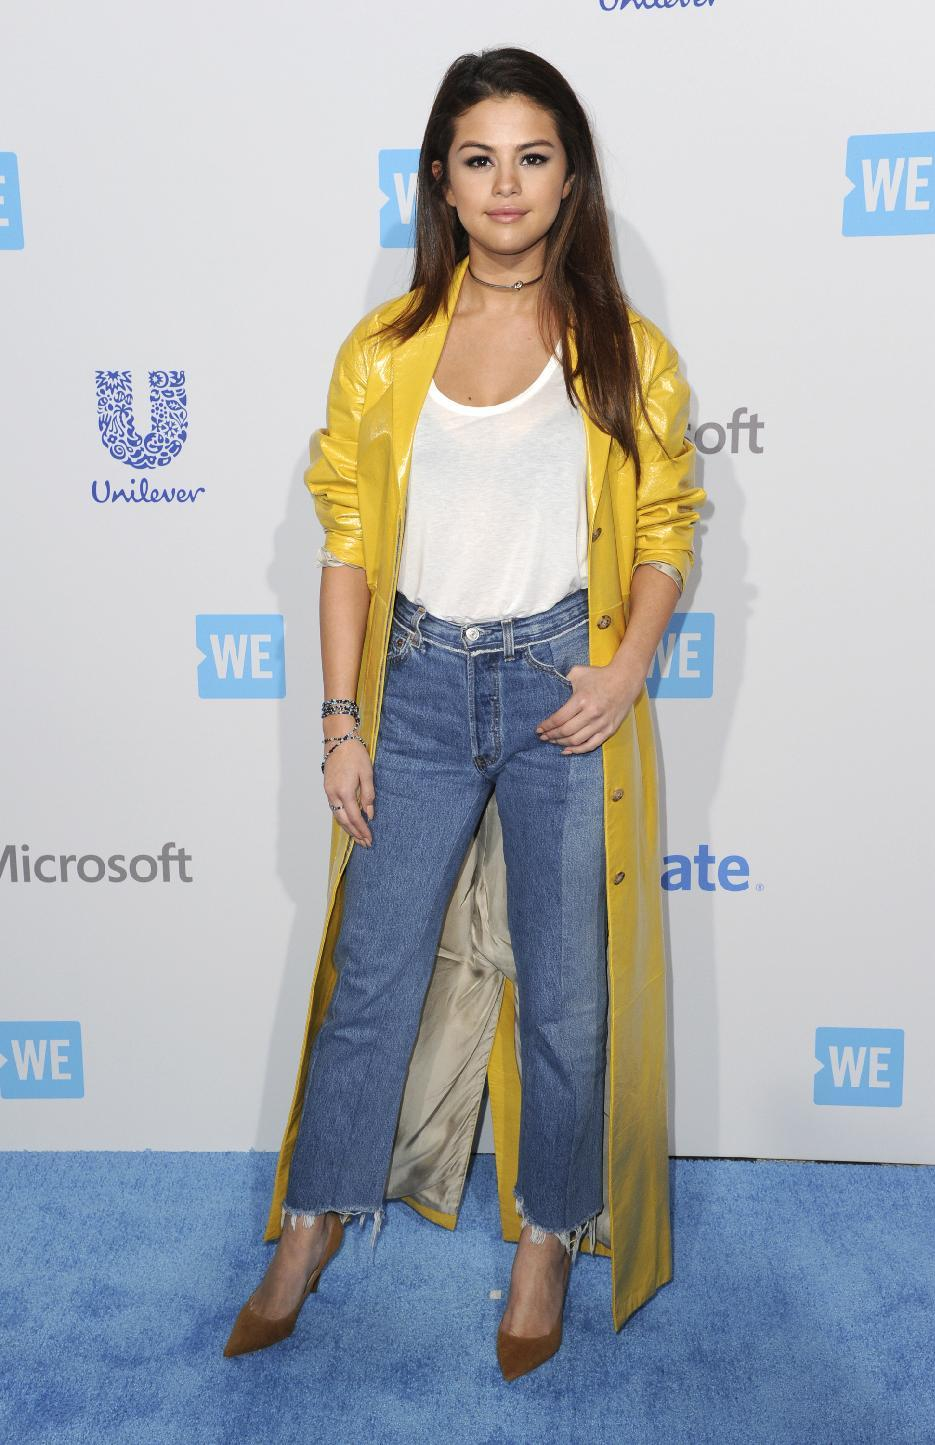 Selena Gomez attends WE Day California 2016